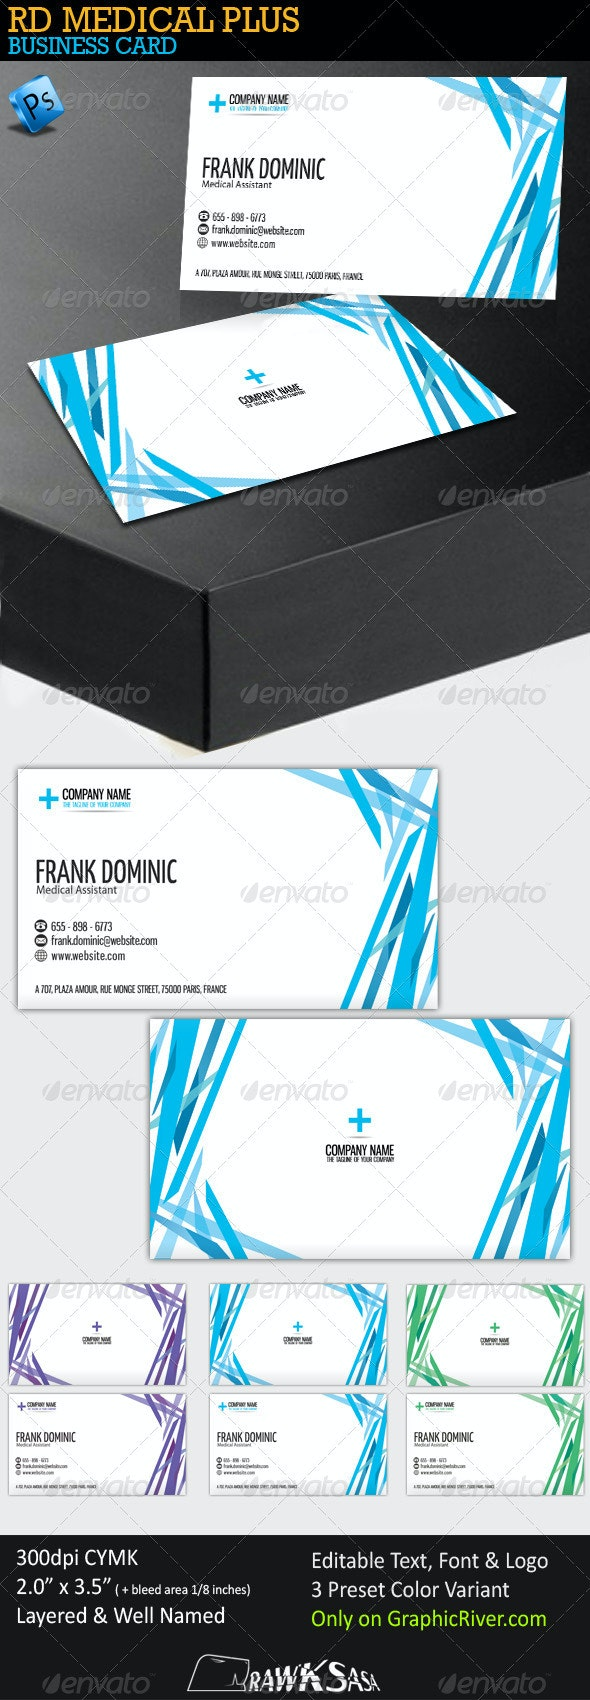 RD Medical Plus Business Card - Industry Specific Business Cards